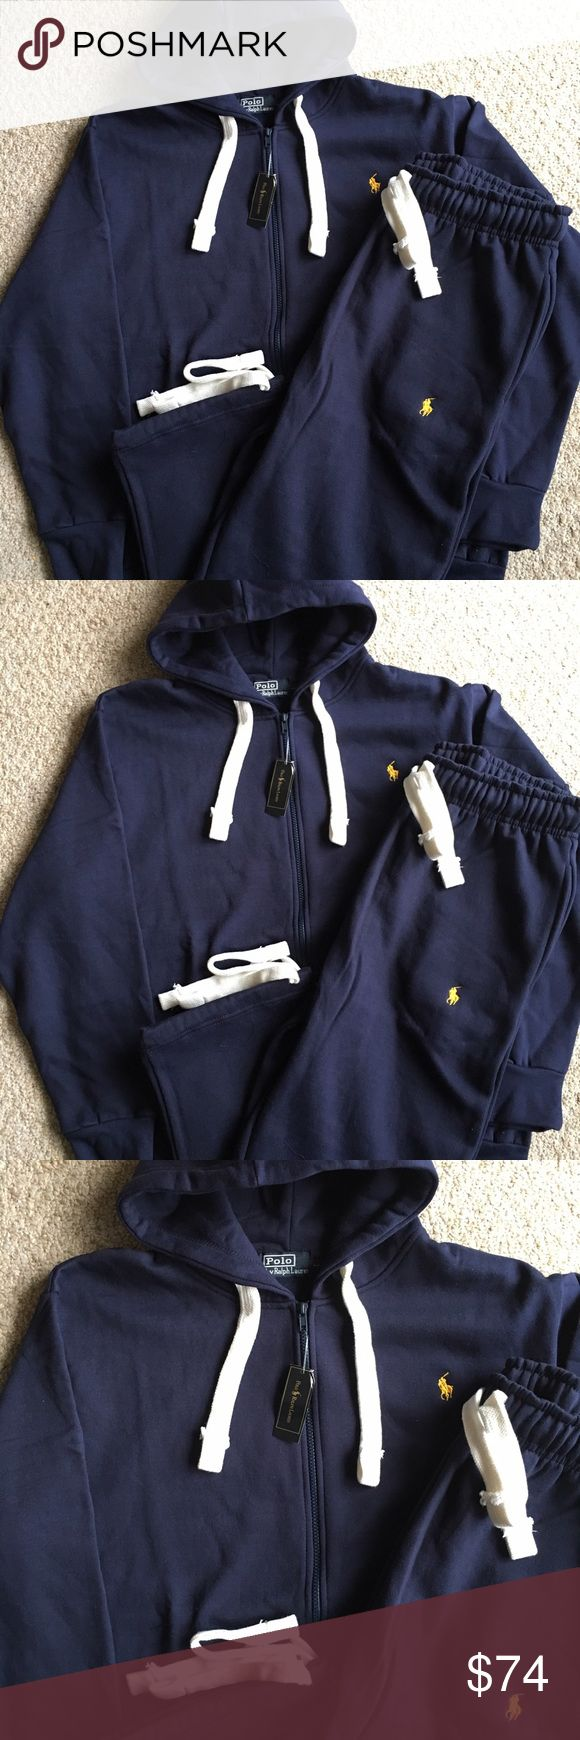 New Ralph Lauren Polo Hoodie Sweatpants Set Brand new with tags. Navy Blue with Yellow Polo stitch. Drawstring Sweatpants with zippered Hoodie. Great deal! Polo by Ralph Lauren Shirts Sweatshirts & Hoodies